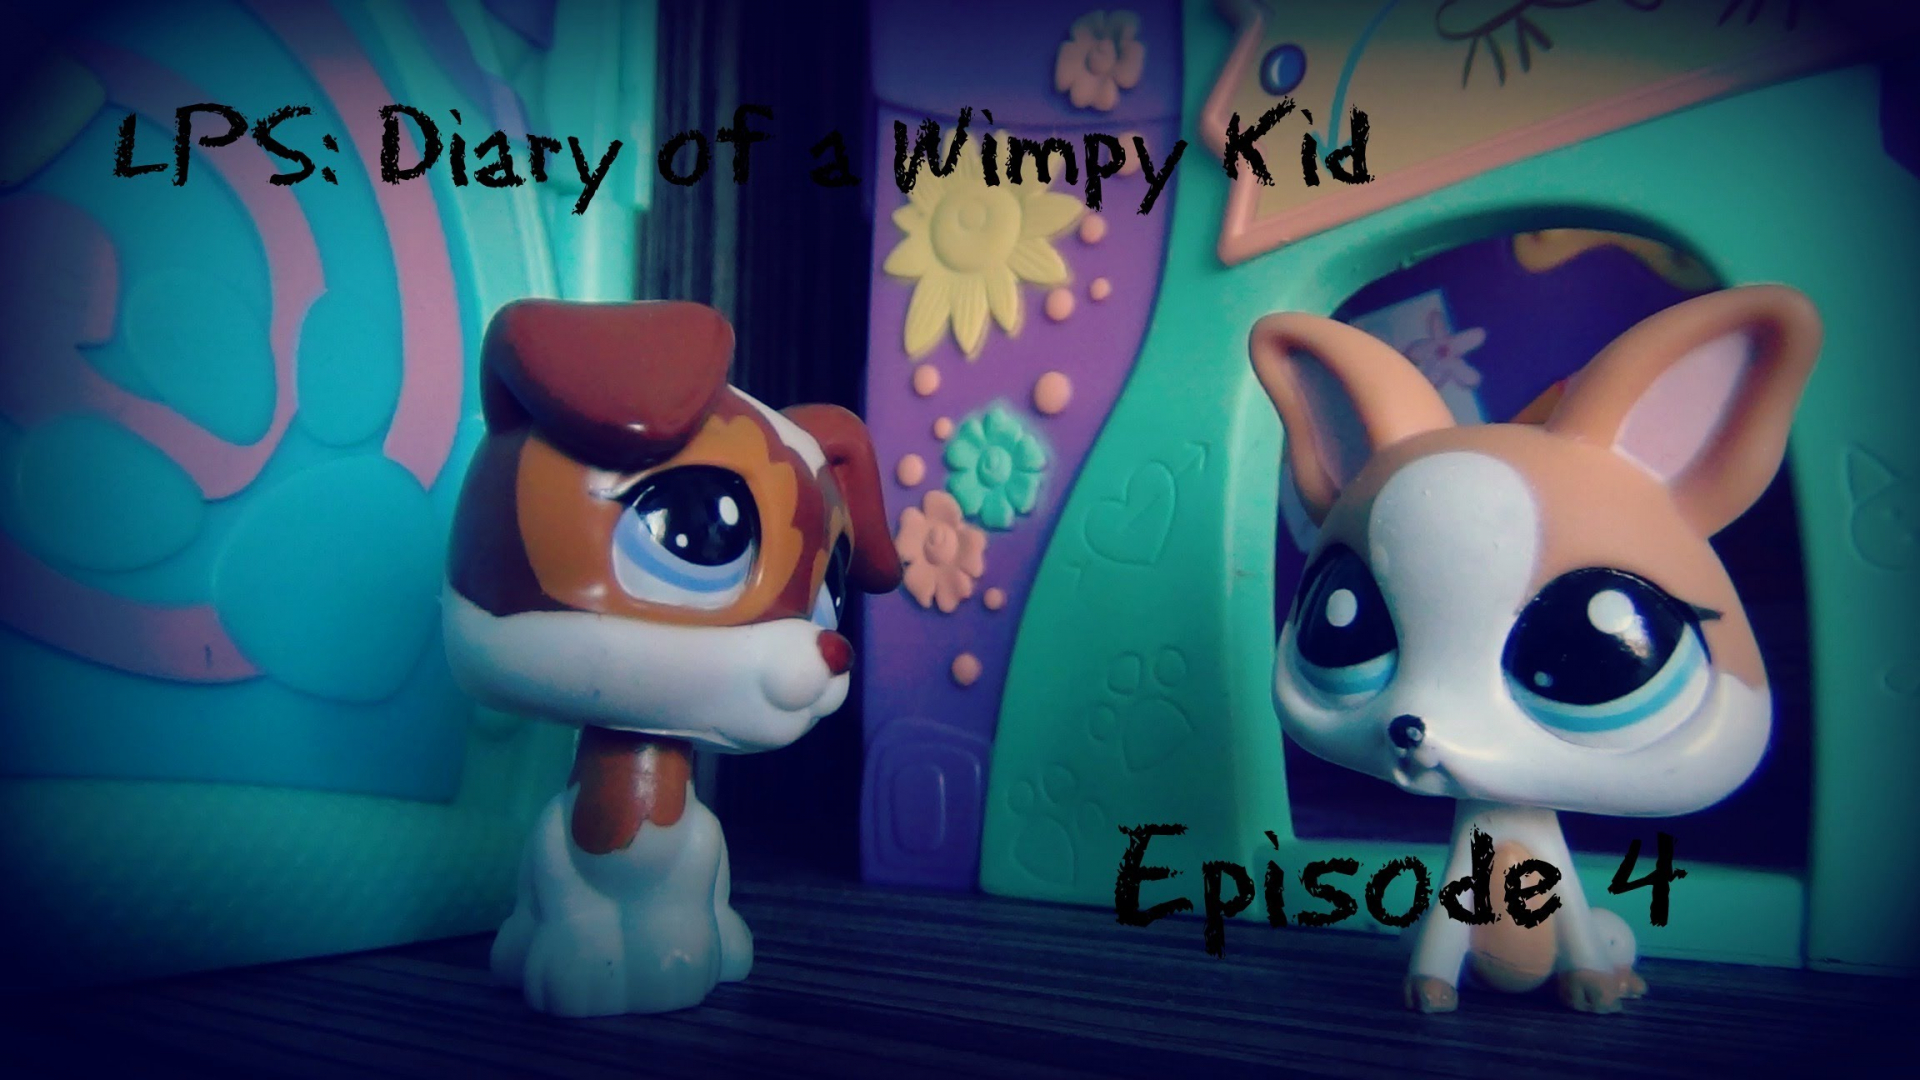 Free Download Lps Diary Of A Wimpy Kid Episode 4 2304x1296 For